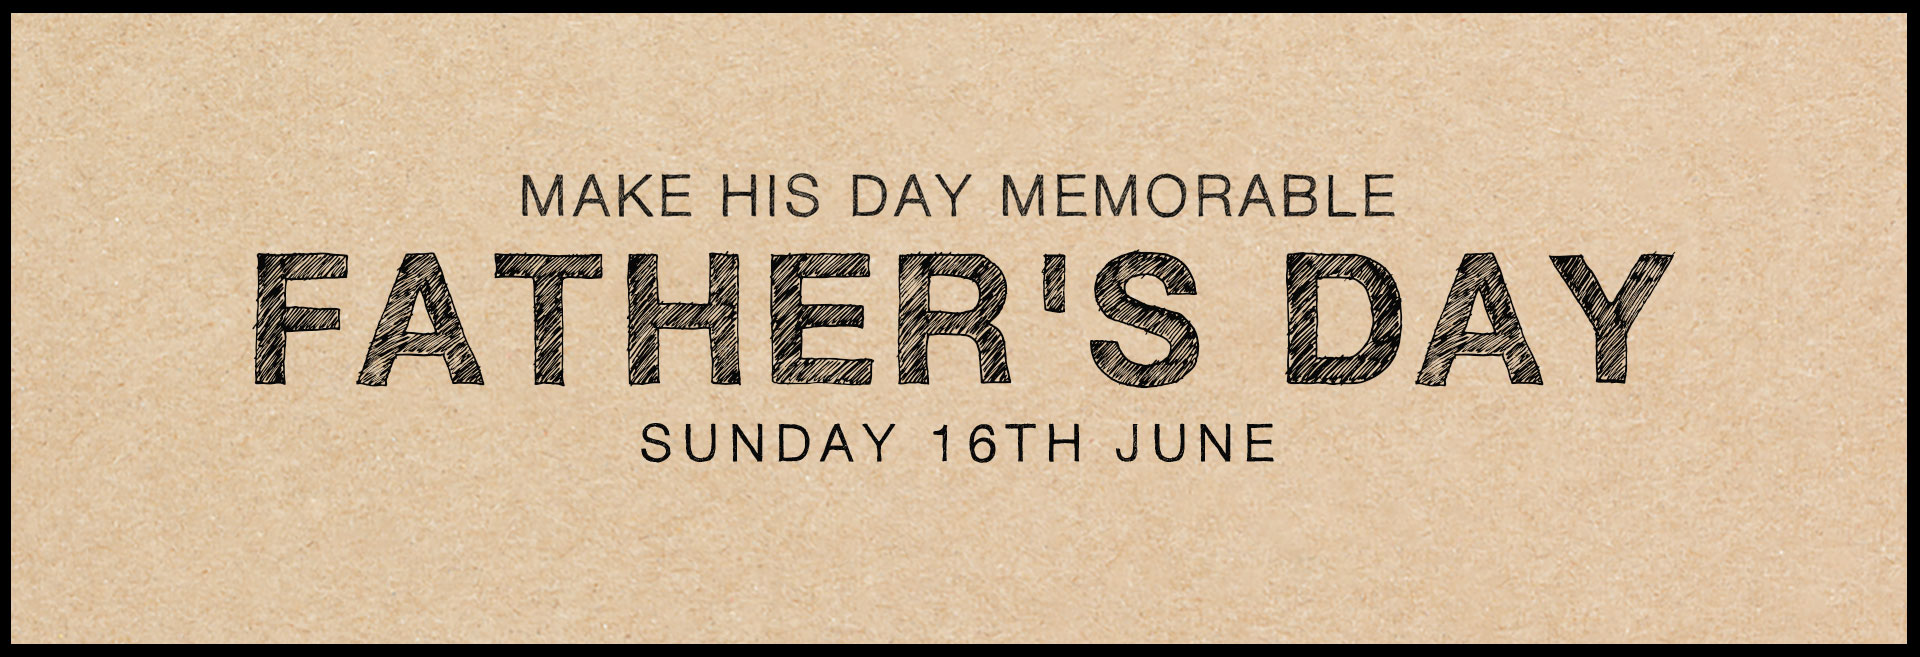 Father's Day at The Lescar